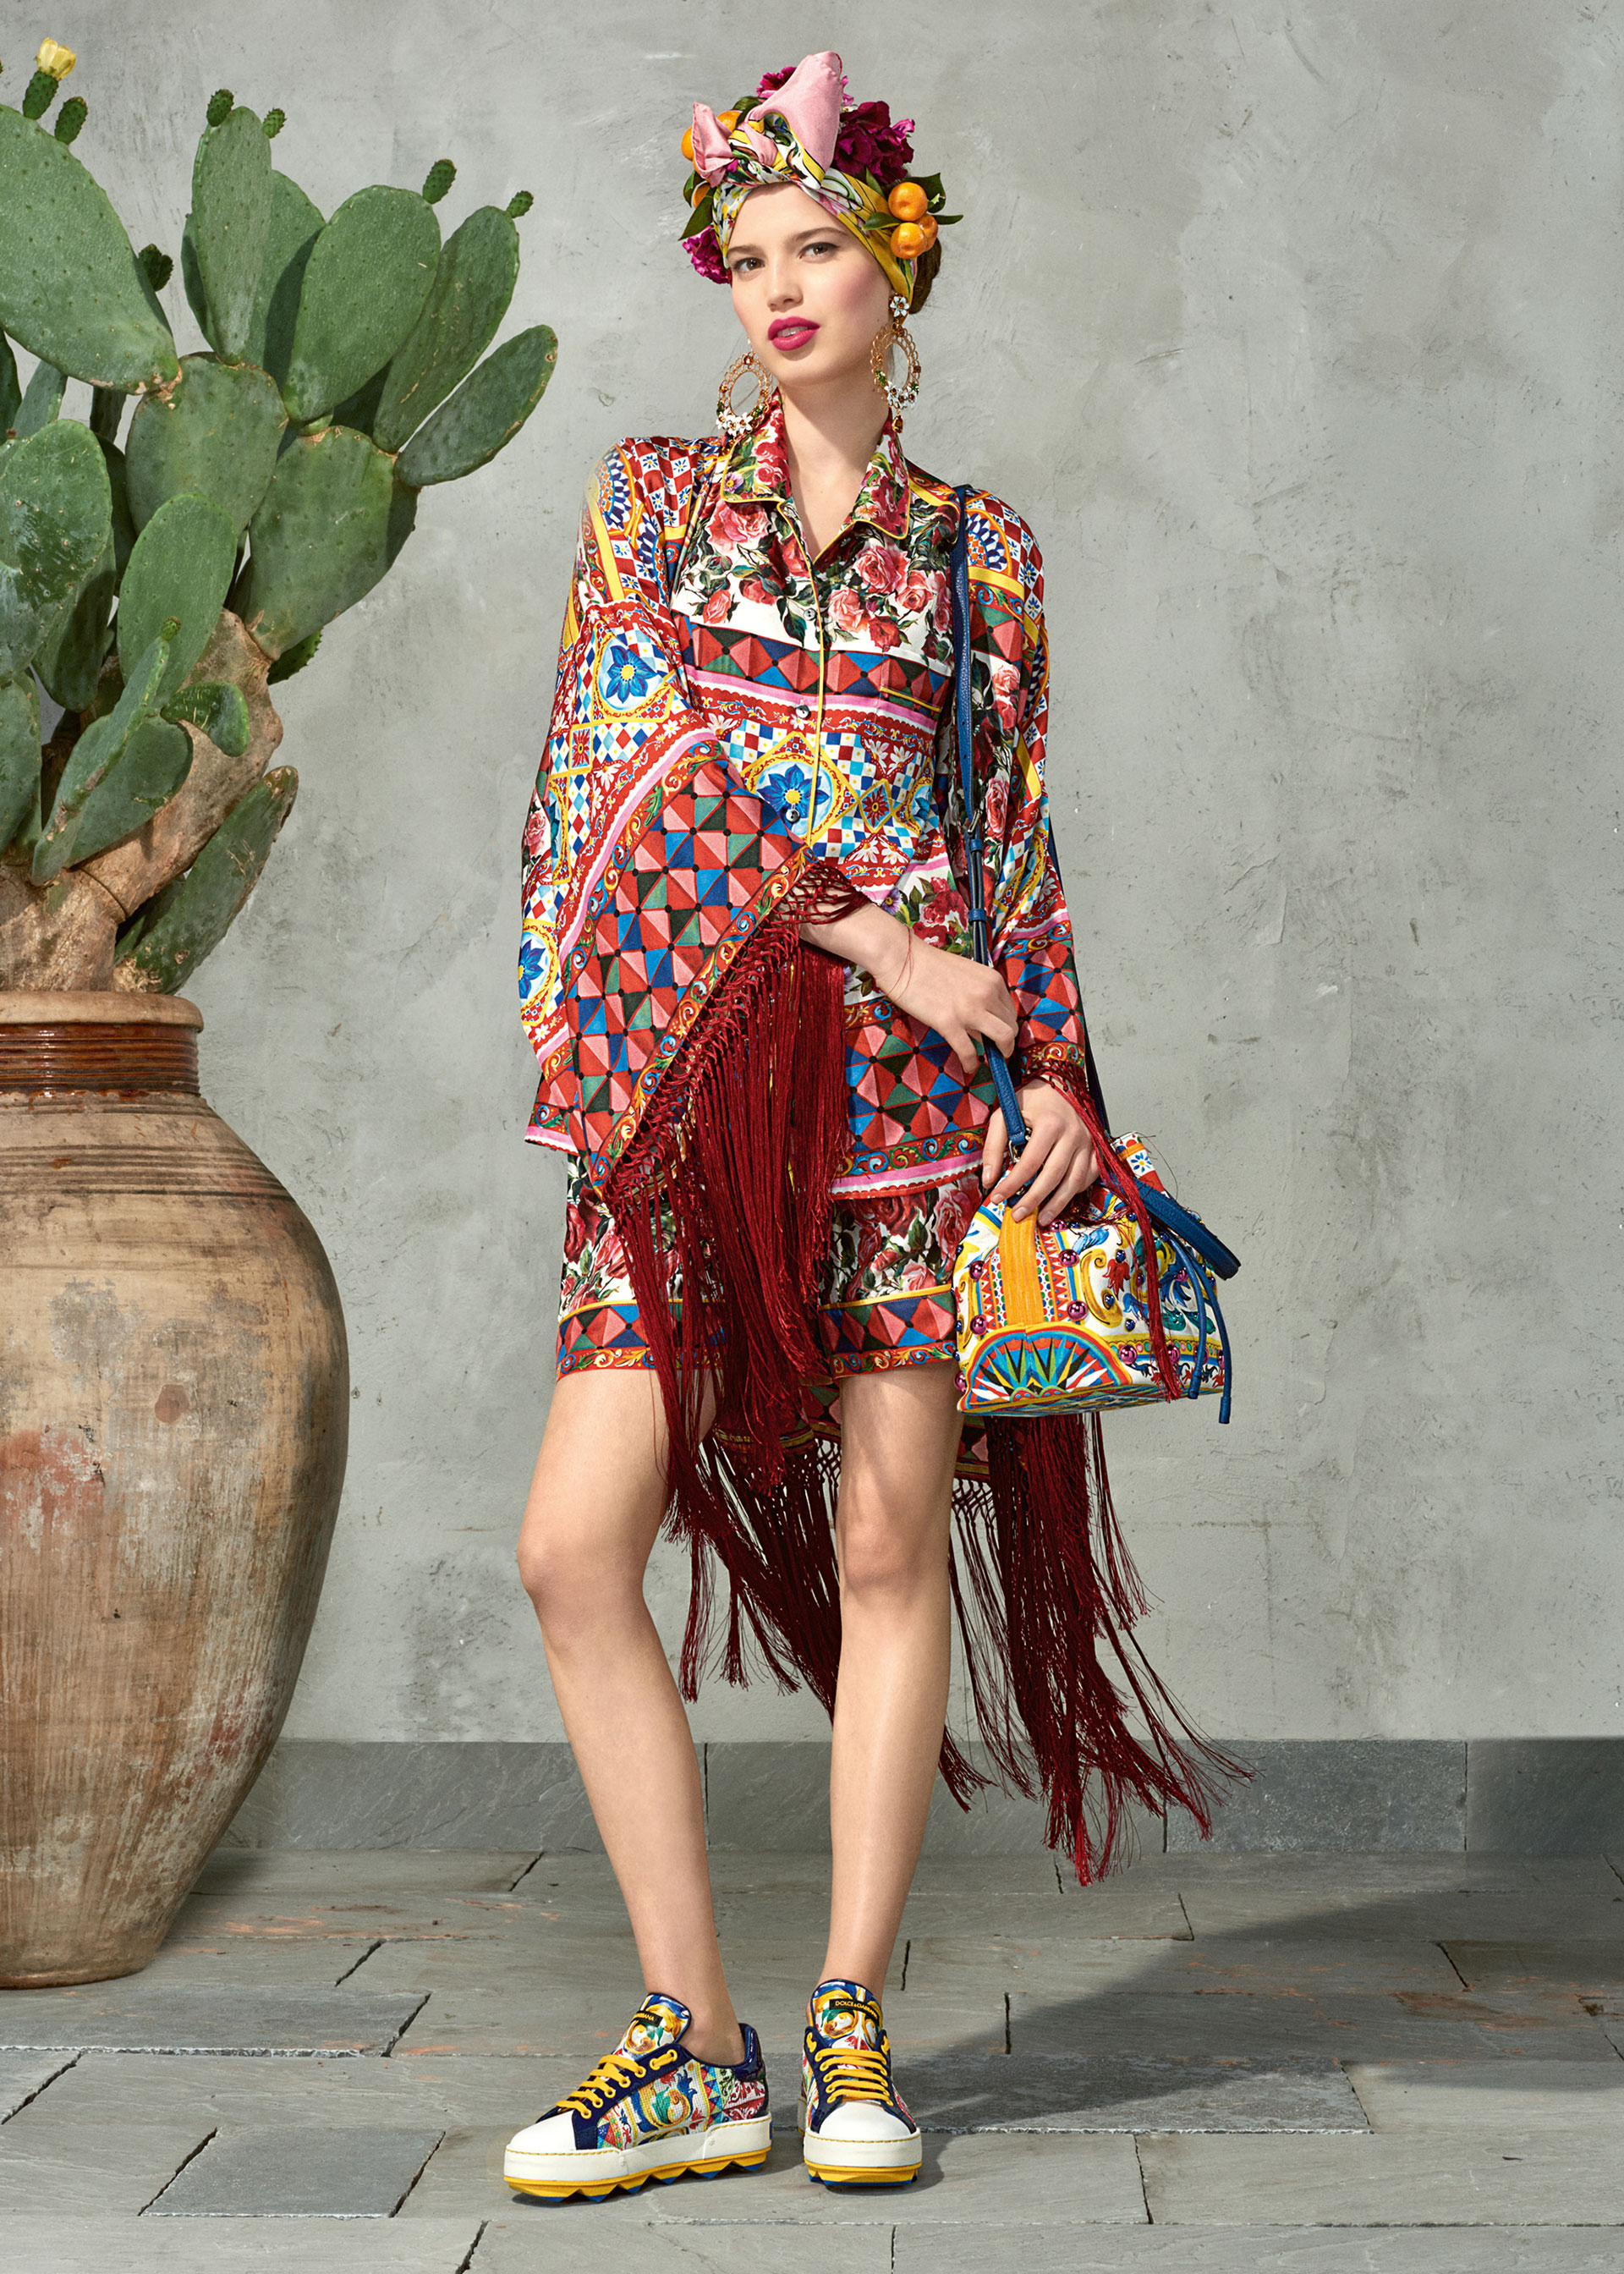 dolce and gabbana summer 2017 woman collection 101 - Dolce & Gabbana/Spring Summer 2017 Collection/ Mambo